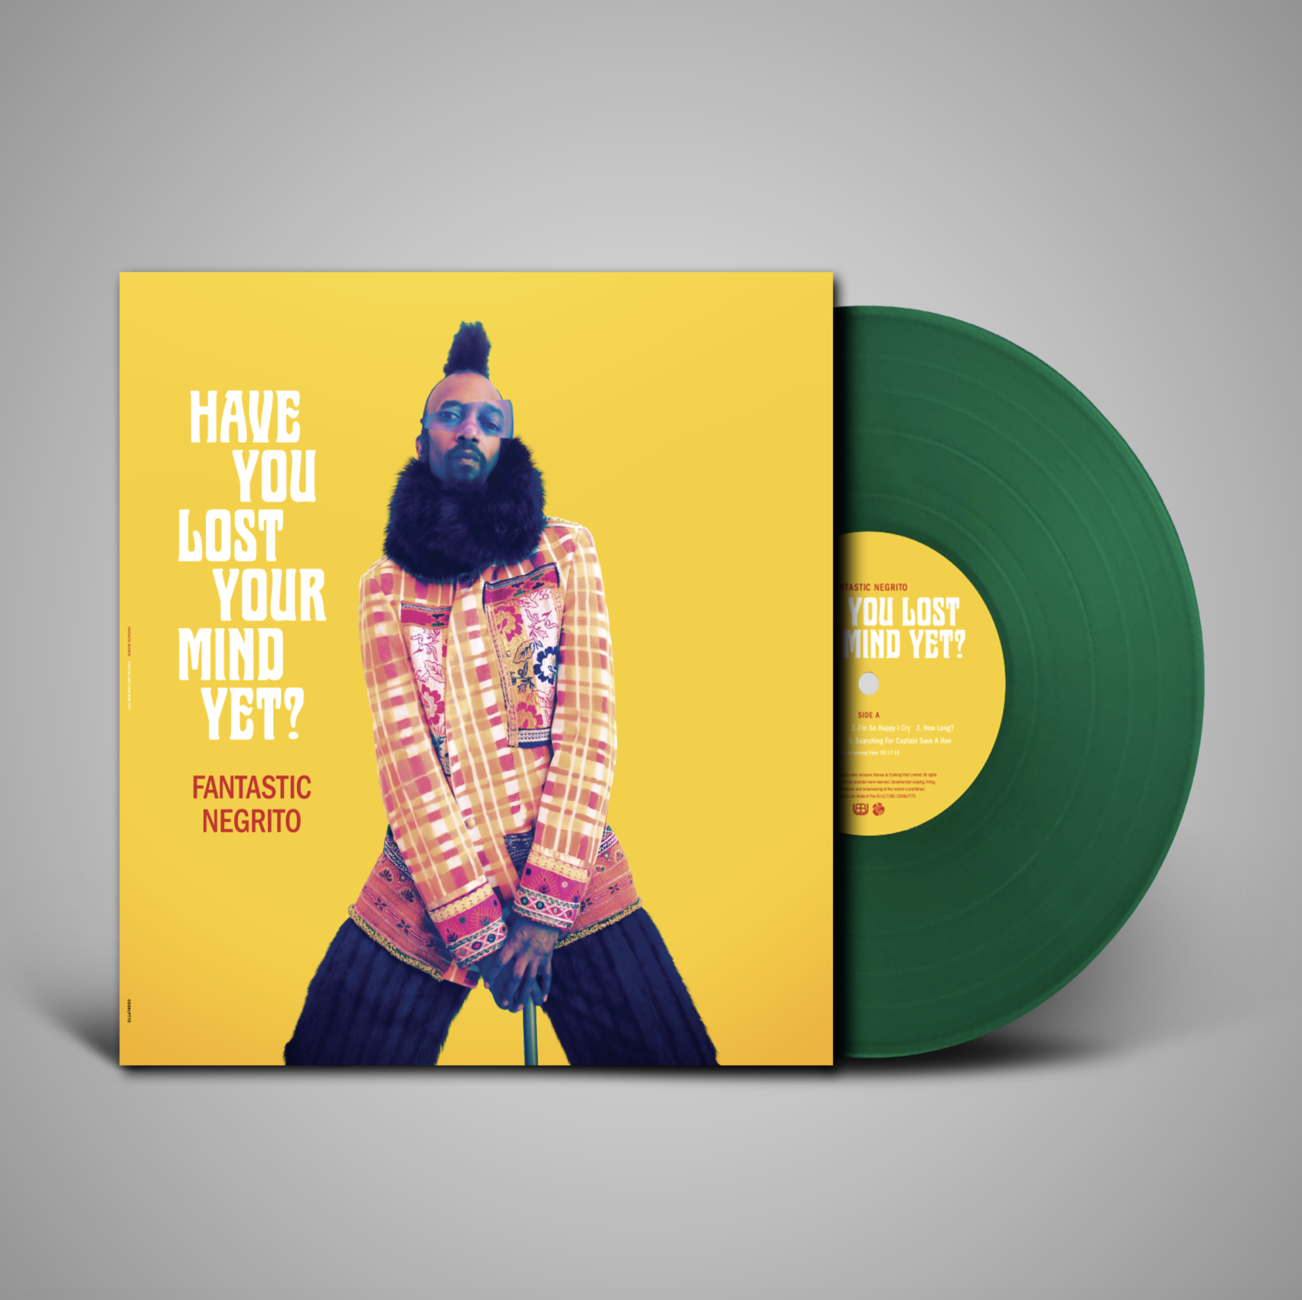 Limited edition green vinyl in our merch store!